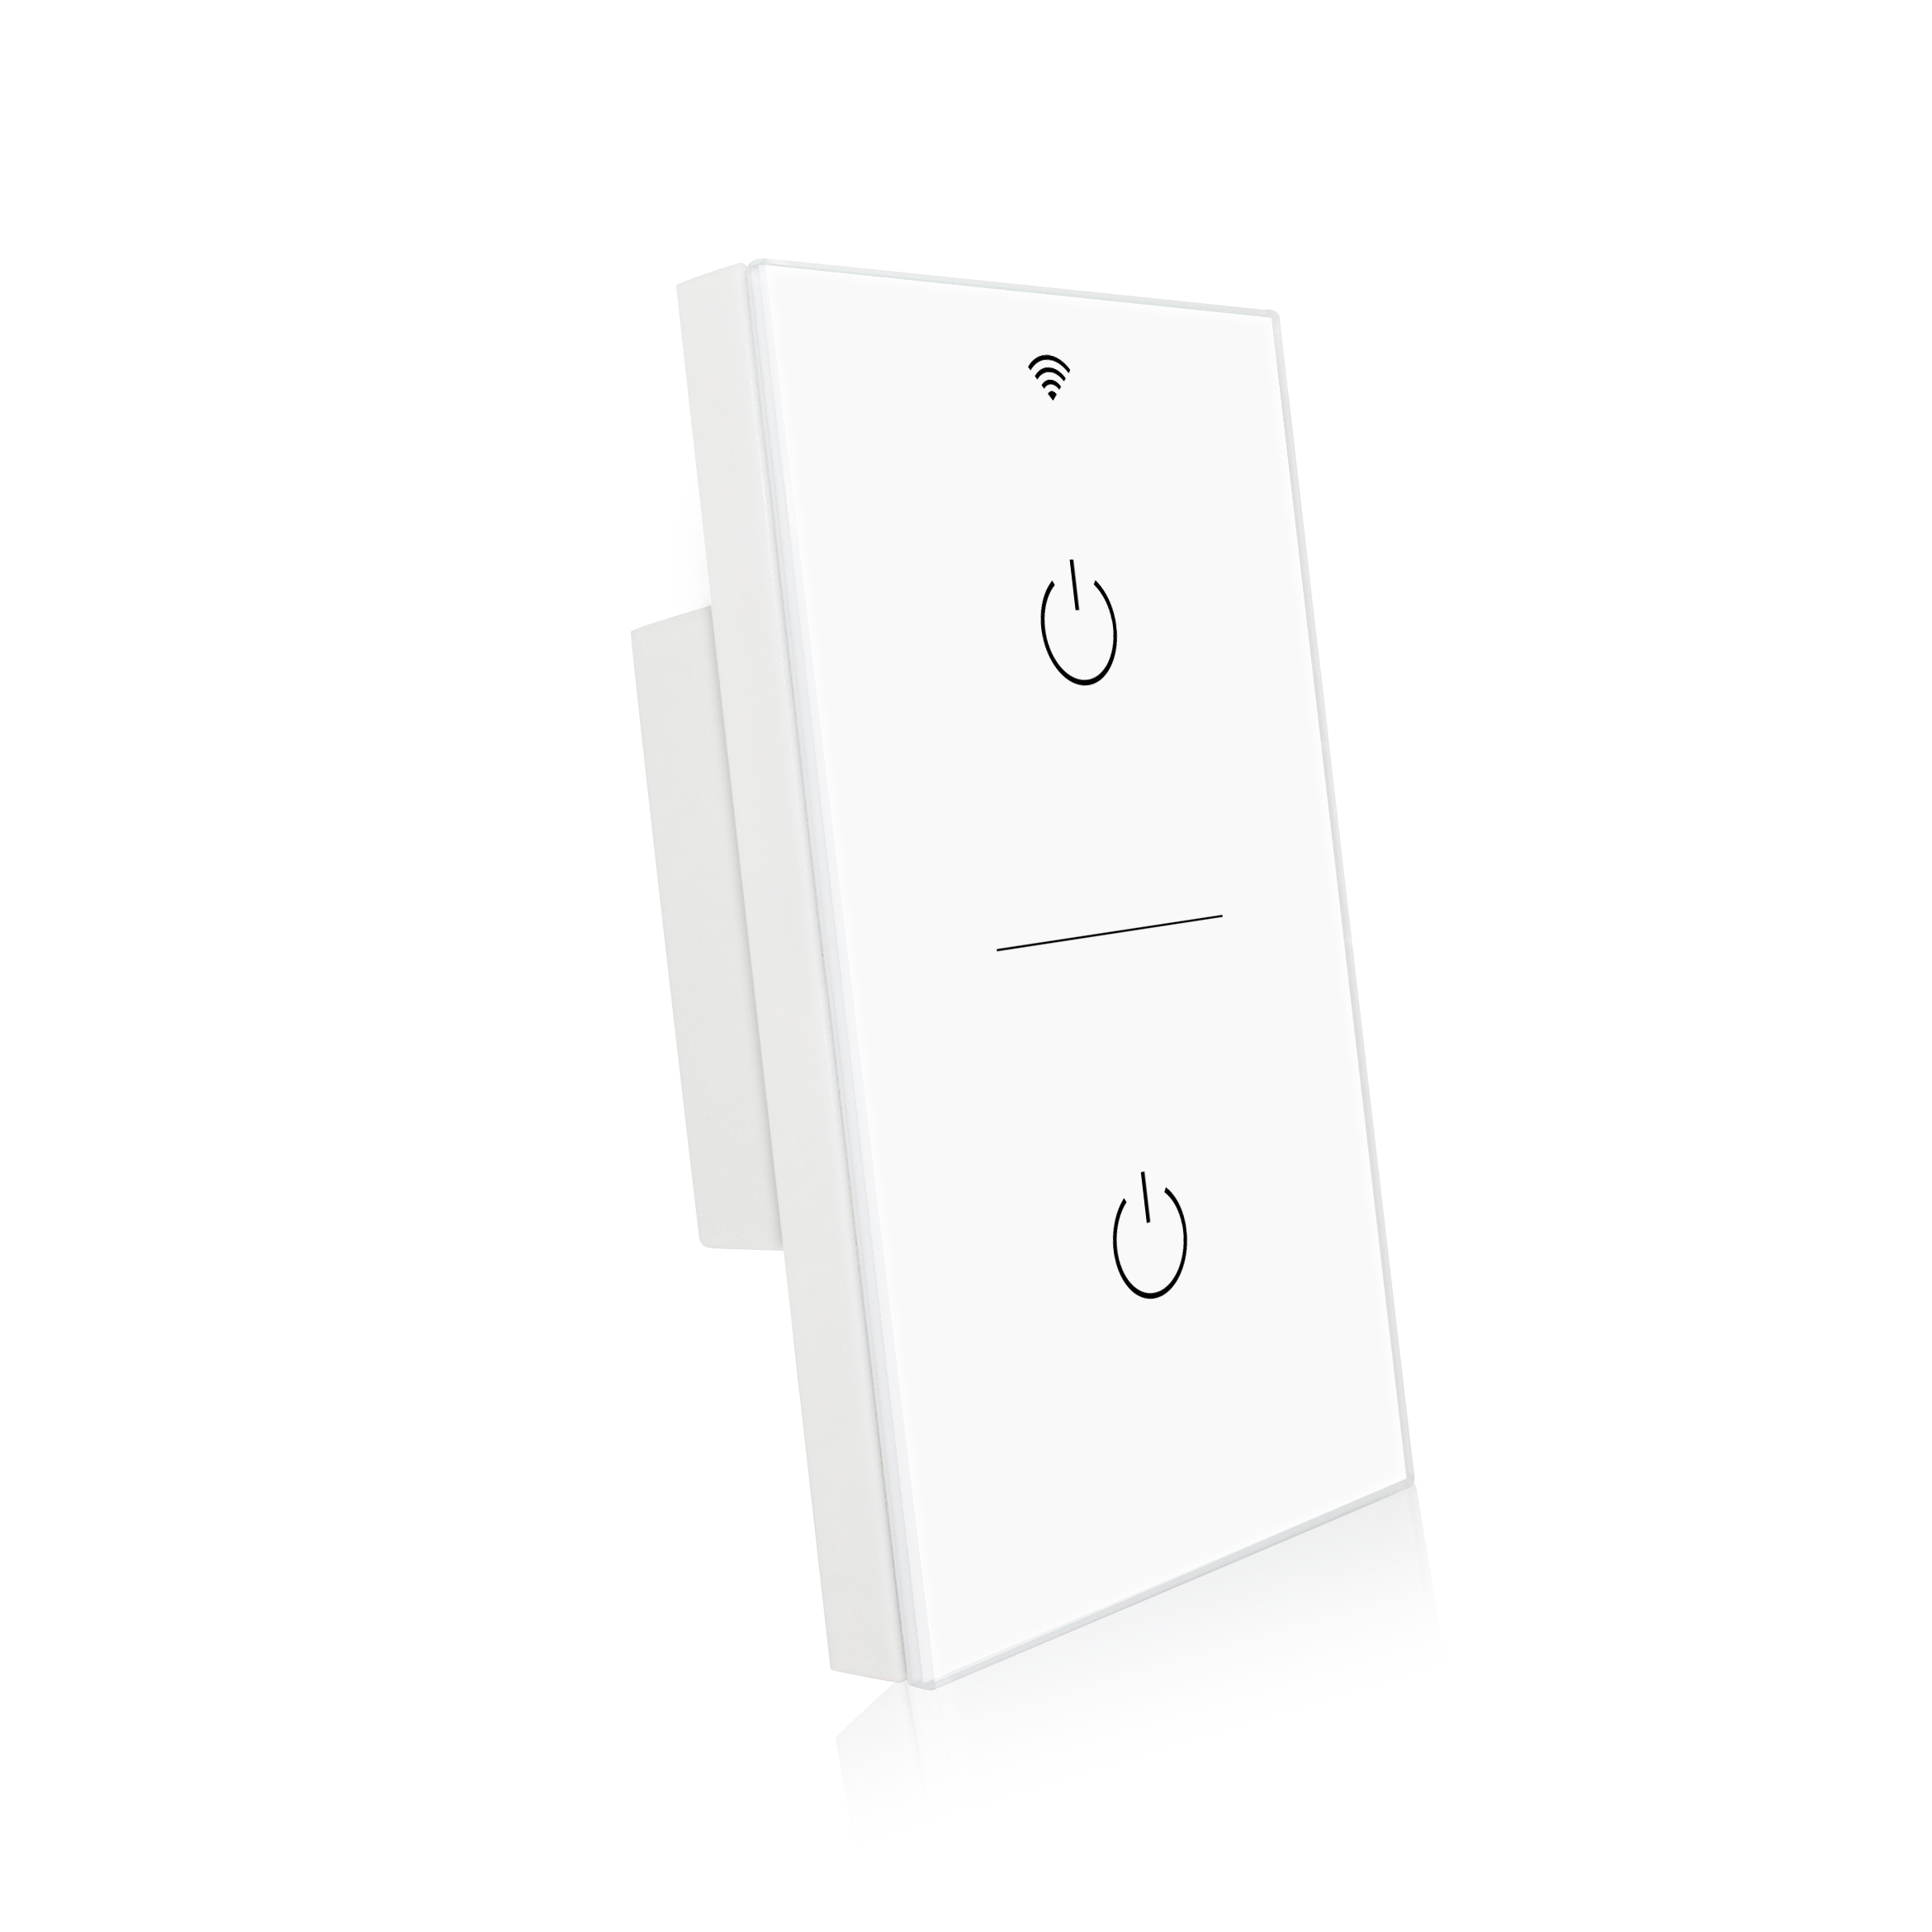 zigbee ha light link zll smart home automation touch control panel switch